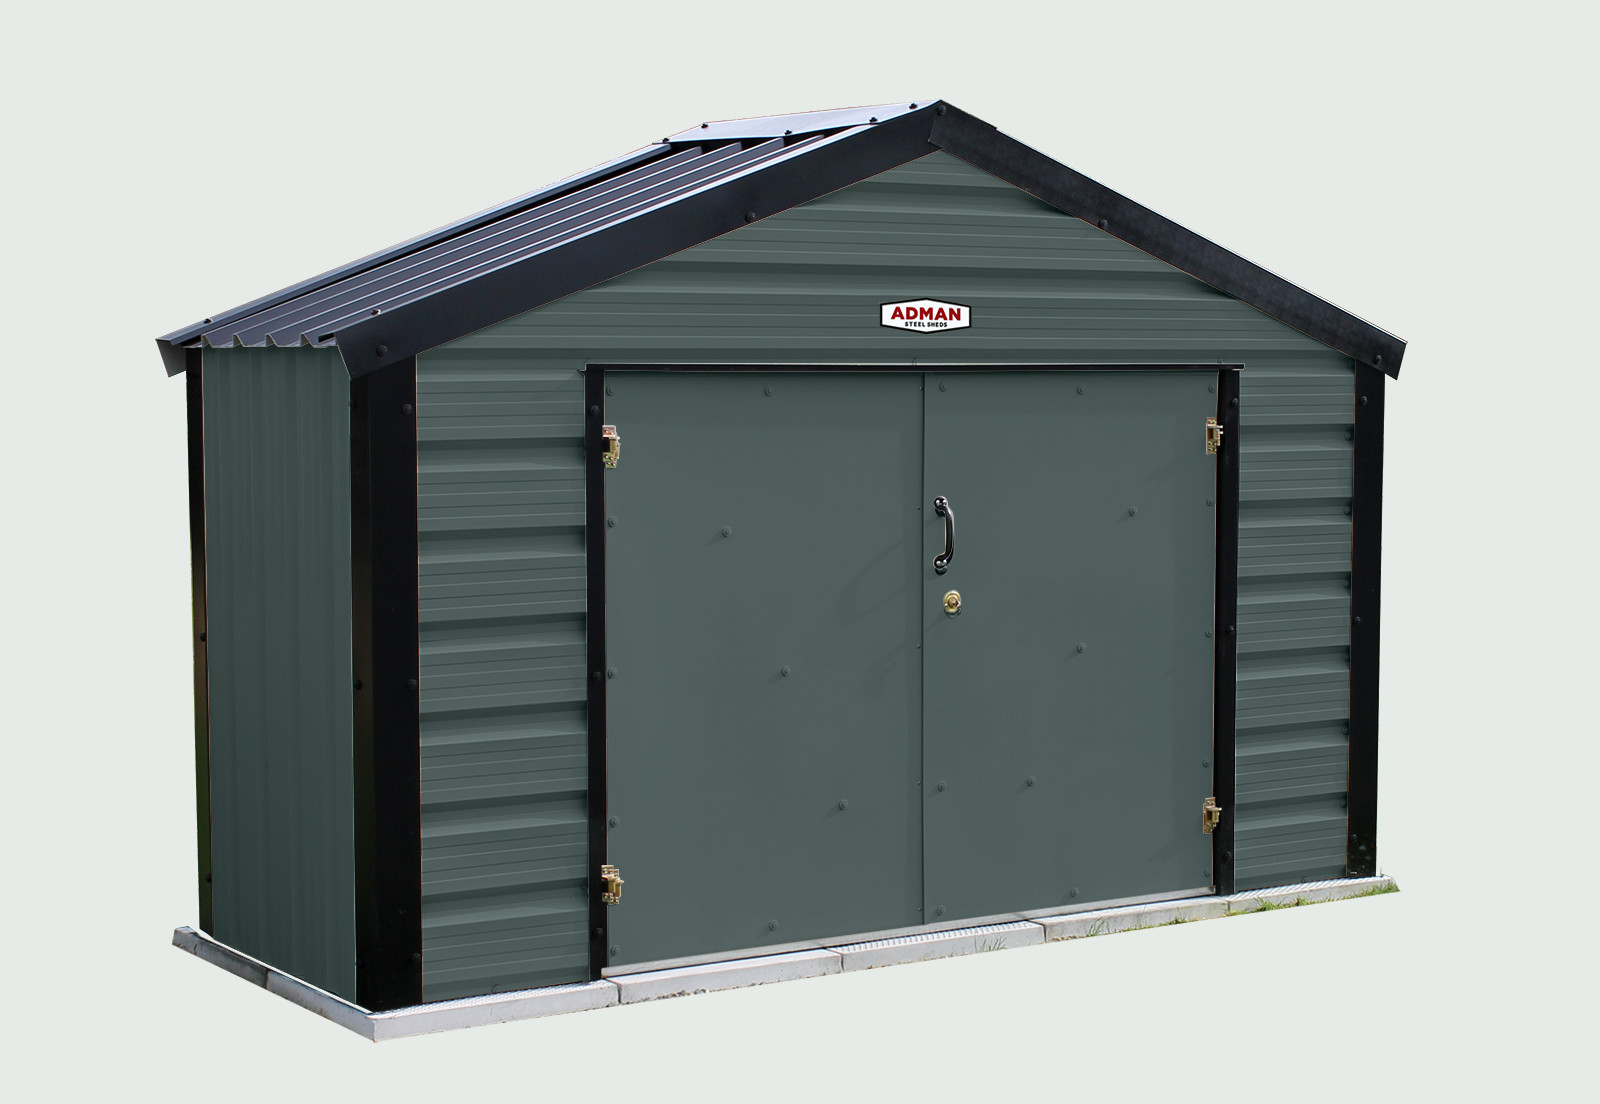 barns custom doors agricultural dutch shed open sheds barn and direct equine img options pole door windows steel